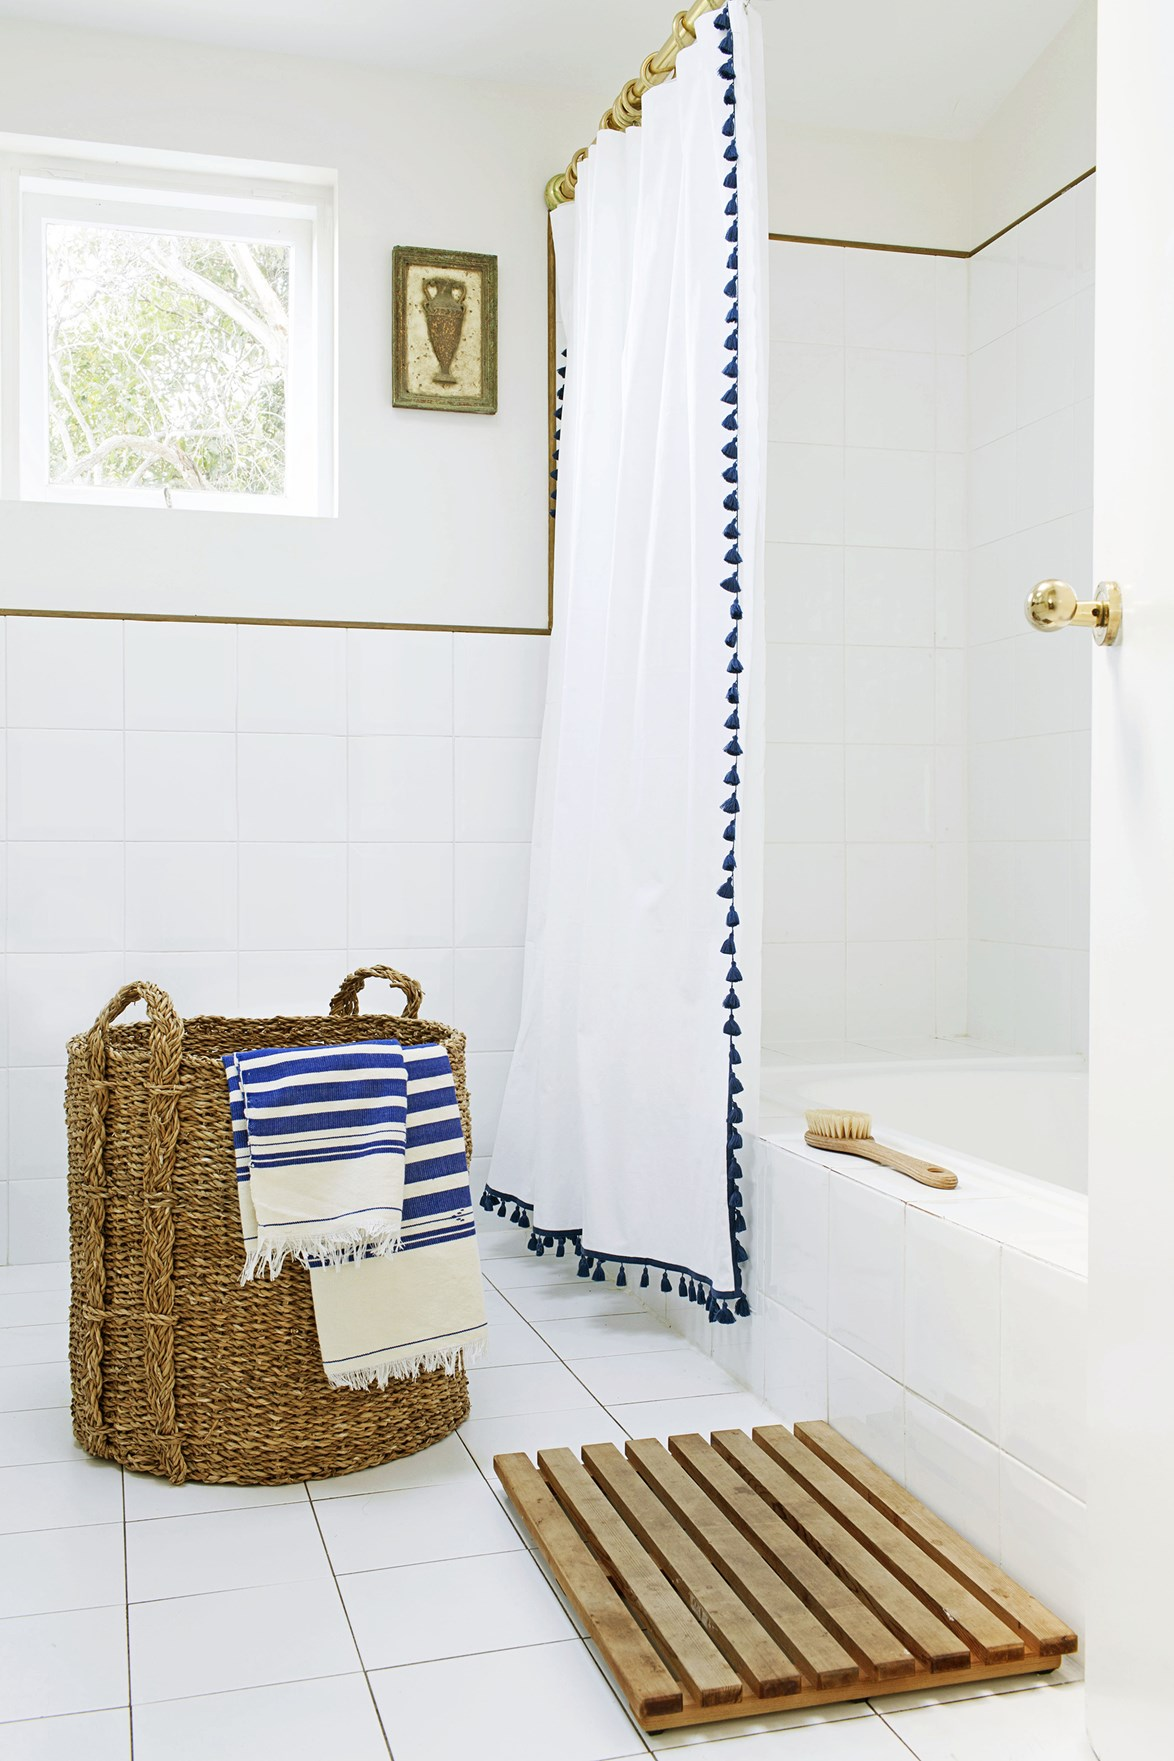 """Renters take note, accessories really *can* transform the look of an entire bathroom. Case in point: this stunning Moroccan inspired space in a [Palm Beach weekender](https://www.homestolove.com.au/gallery-heidis-moroccan-inspired-beach-house-1830